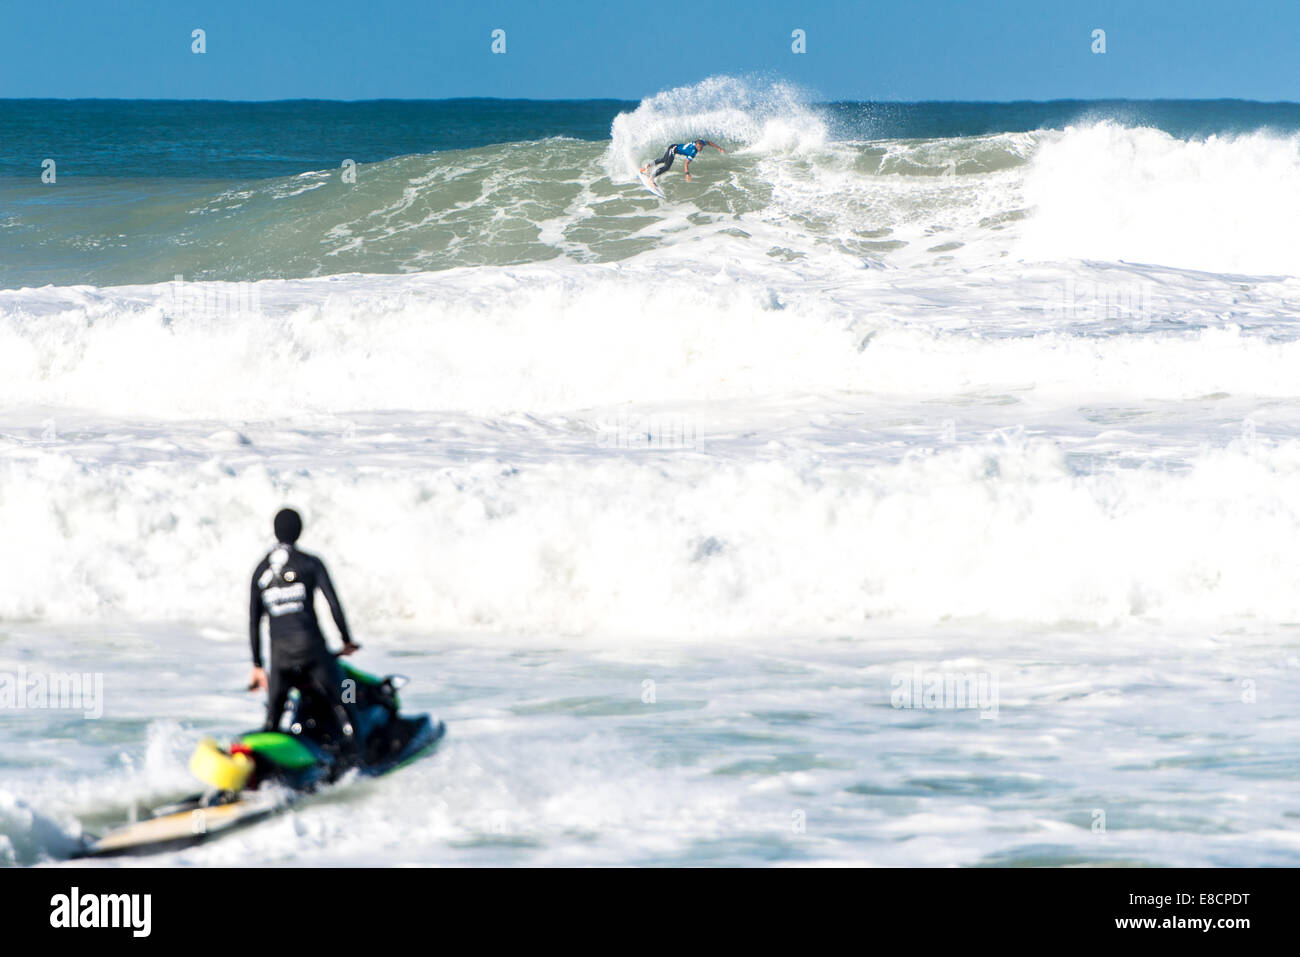 Seignosse, France. 5th Oct, 2014. Jadson Andre of Brazil in action against John John Florence, of Hawaii, who emerged - Stock Image